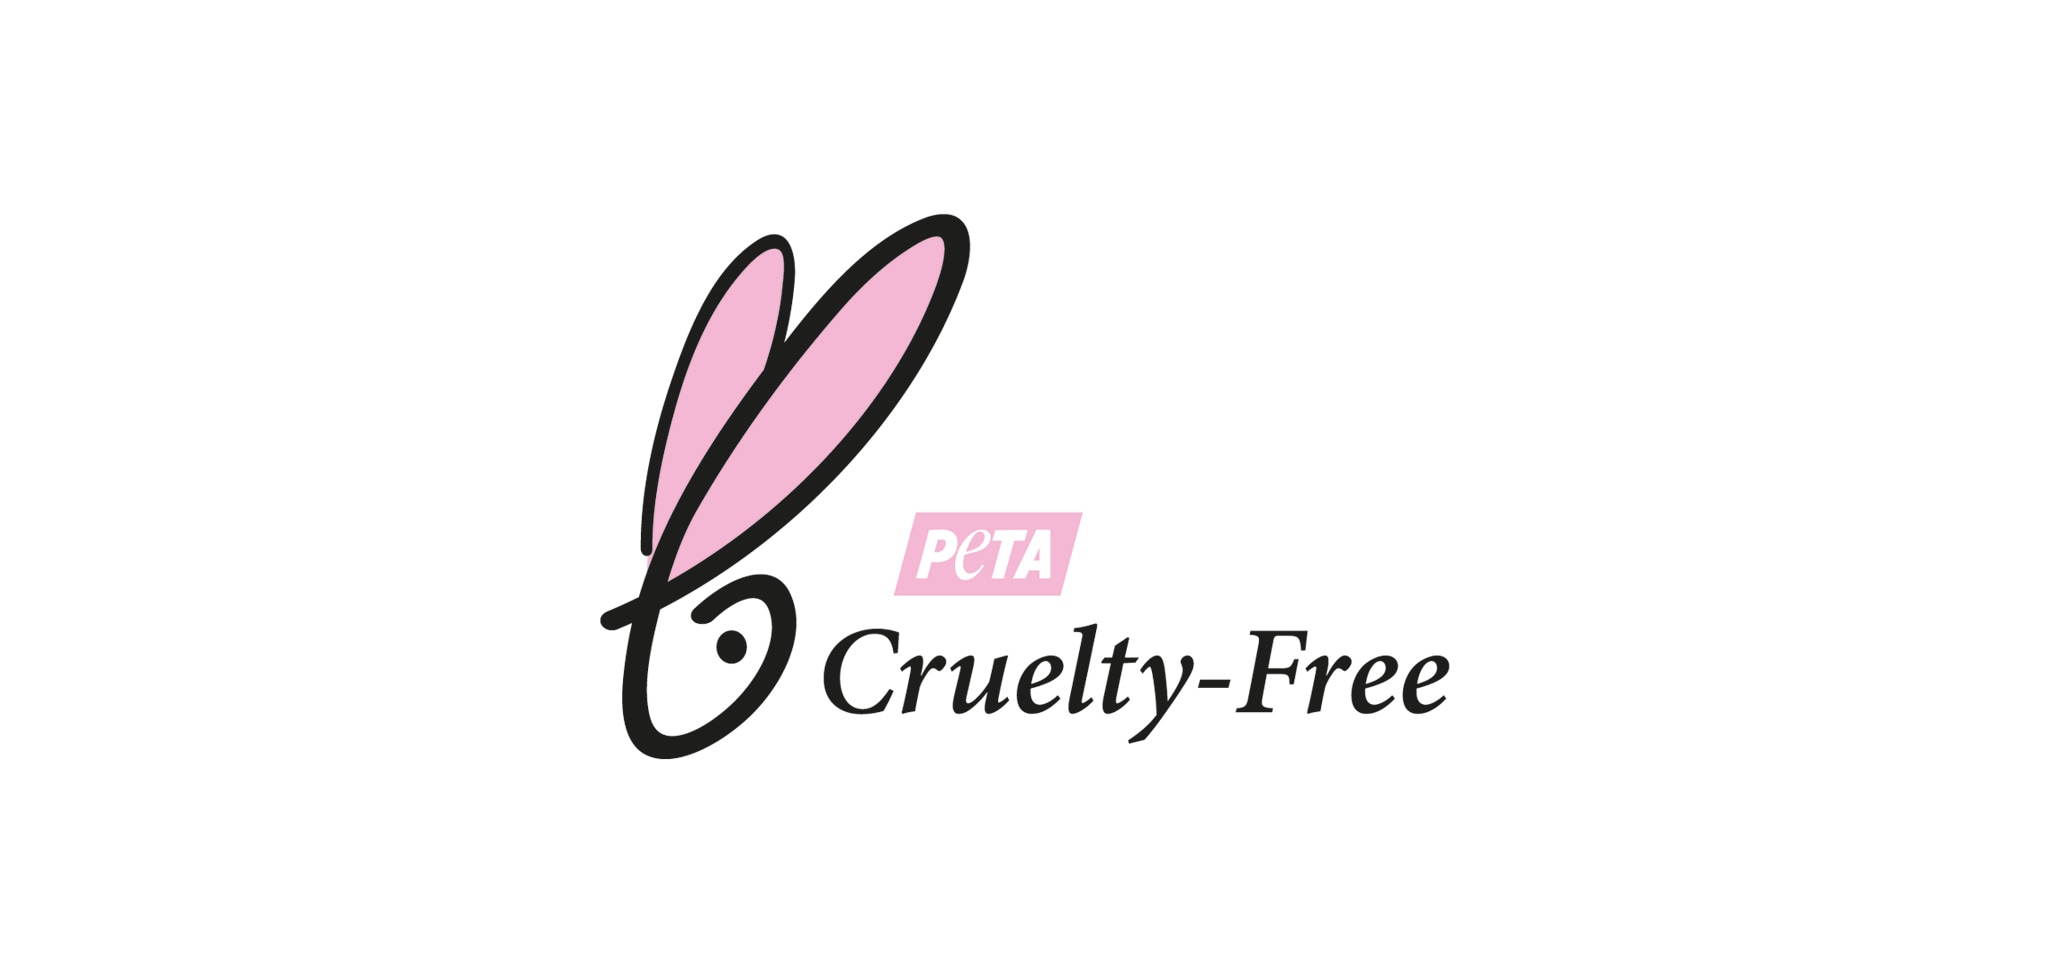 Dove products certified cruelty-free by PETA